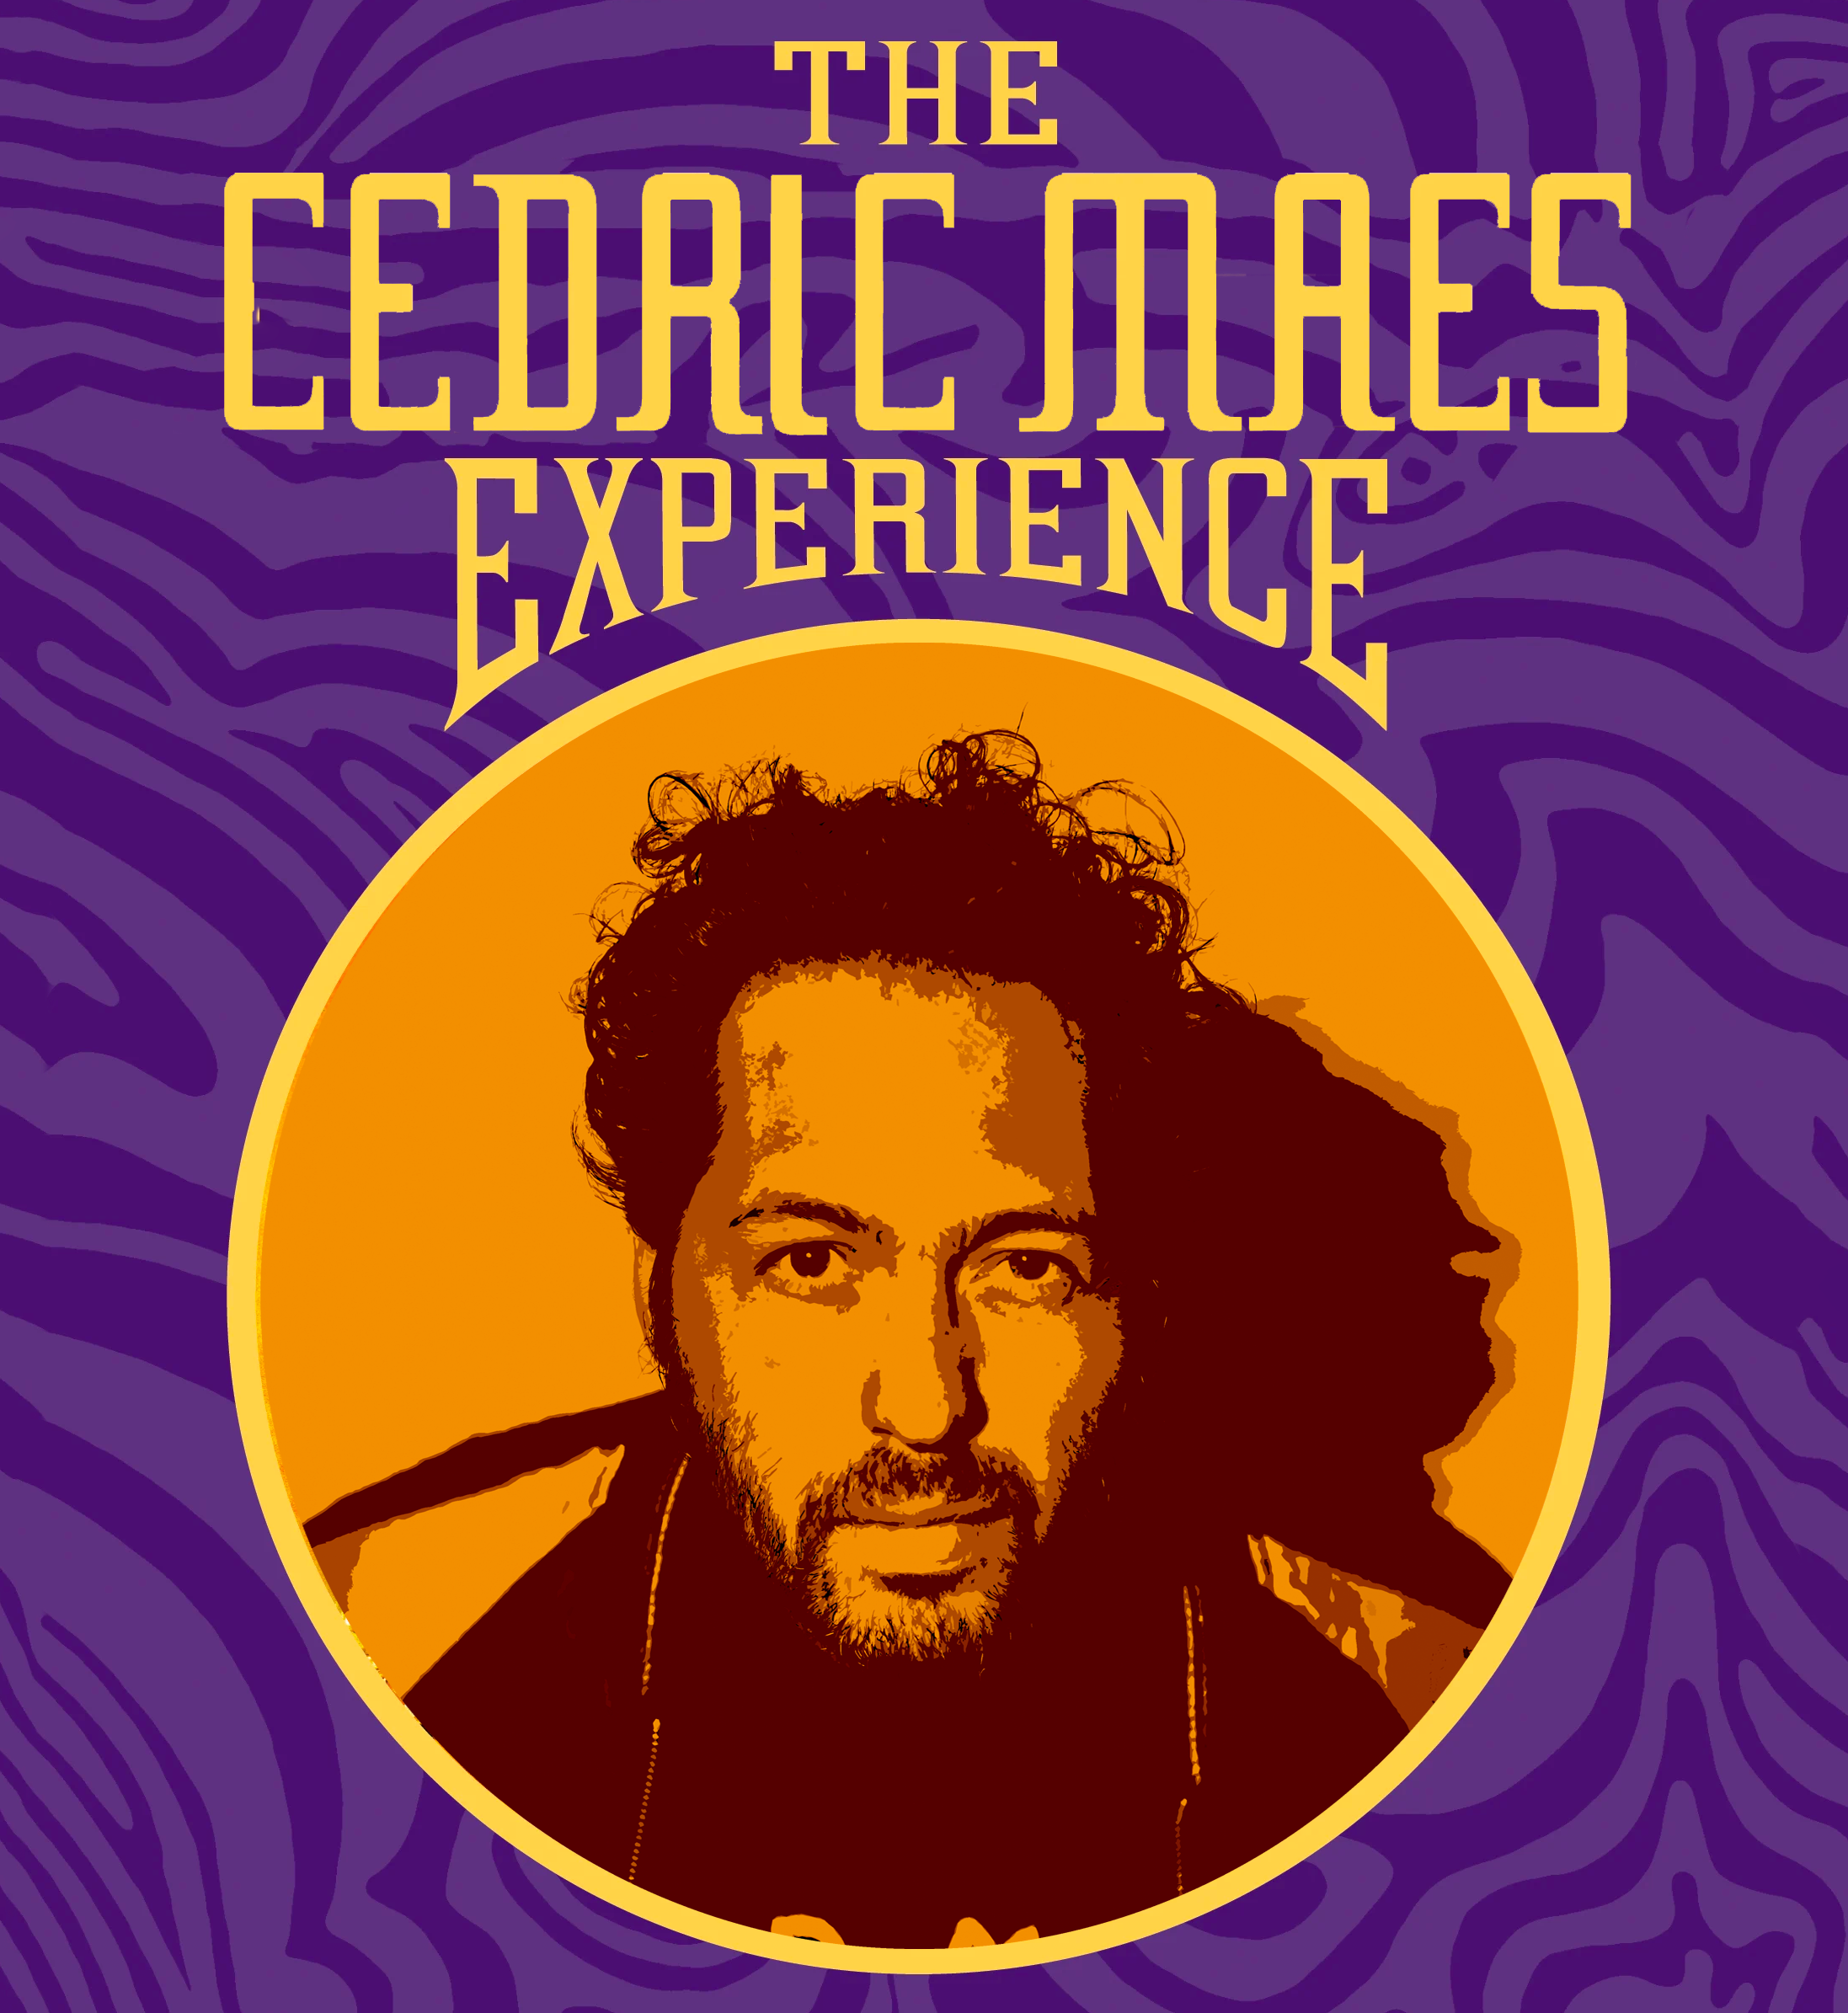 Cedric maes experience square